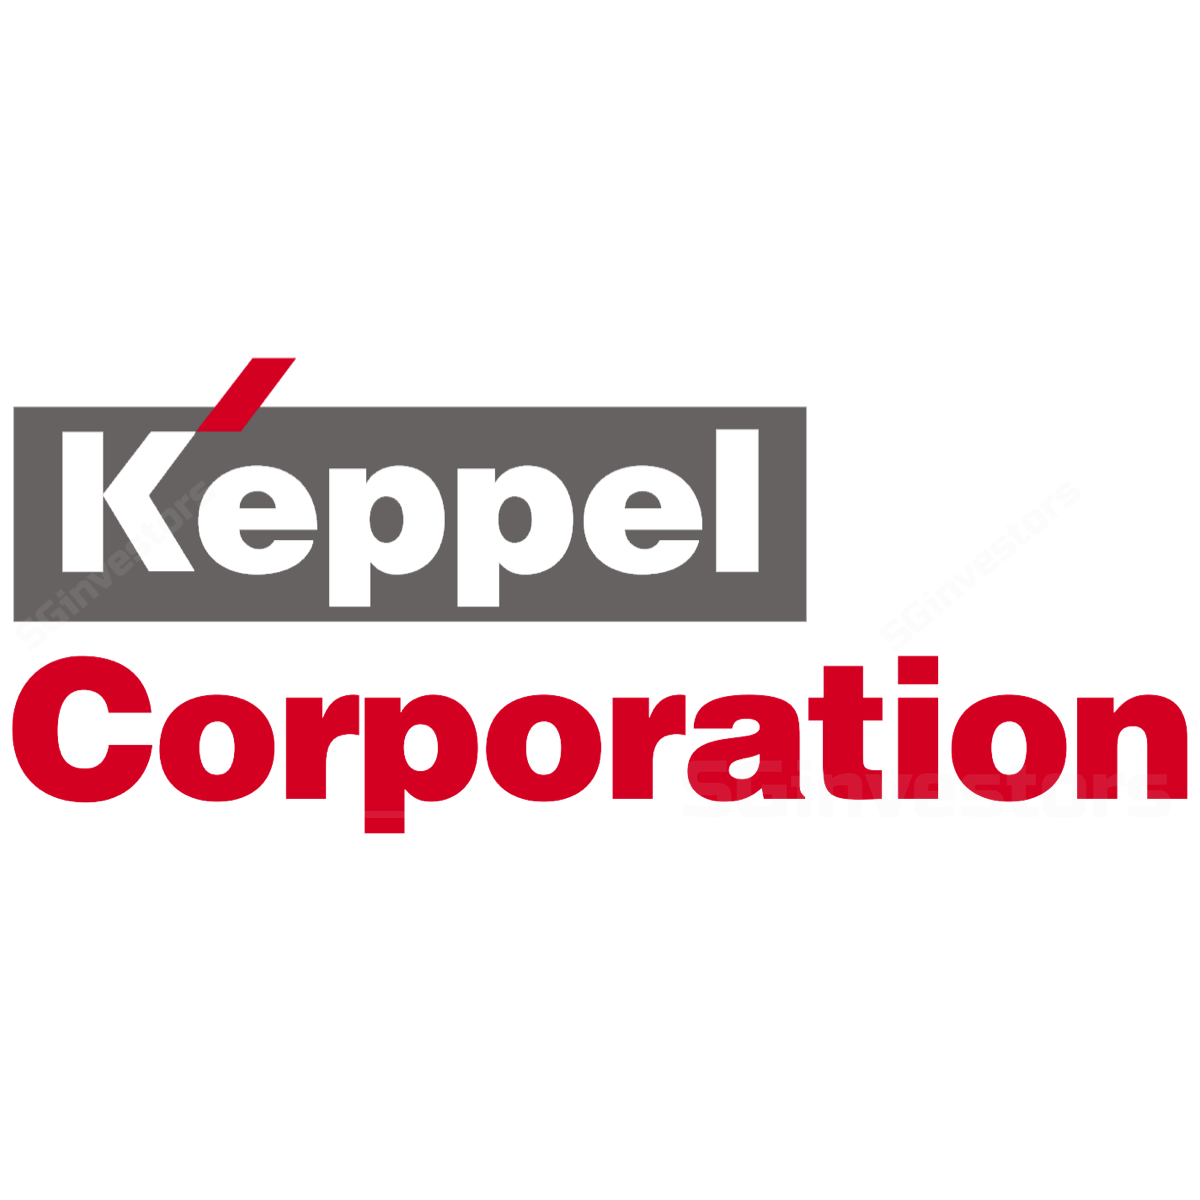 Keppel Corporation - CIMB Research 2018-03-16: Valuation Now More Compelling